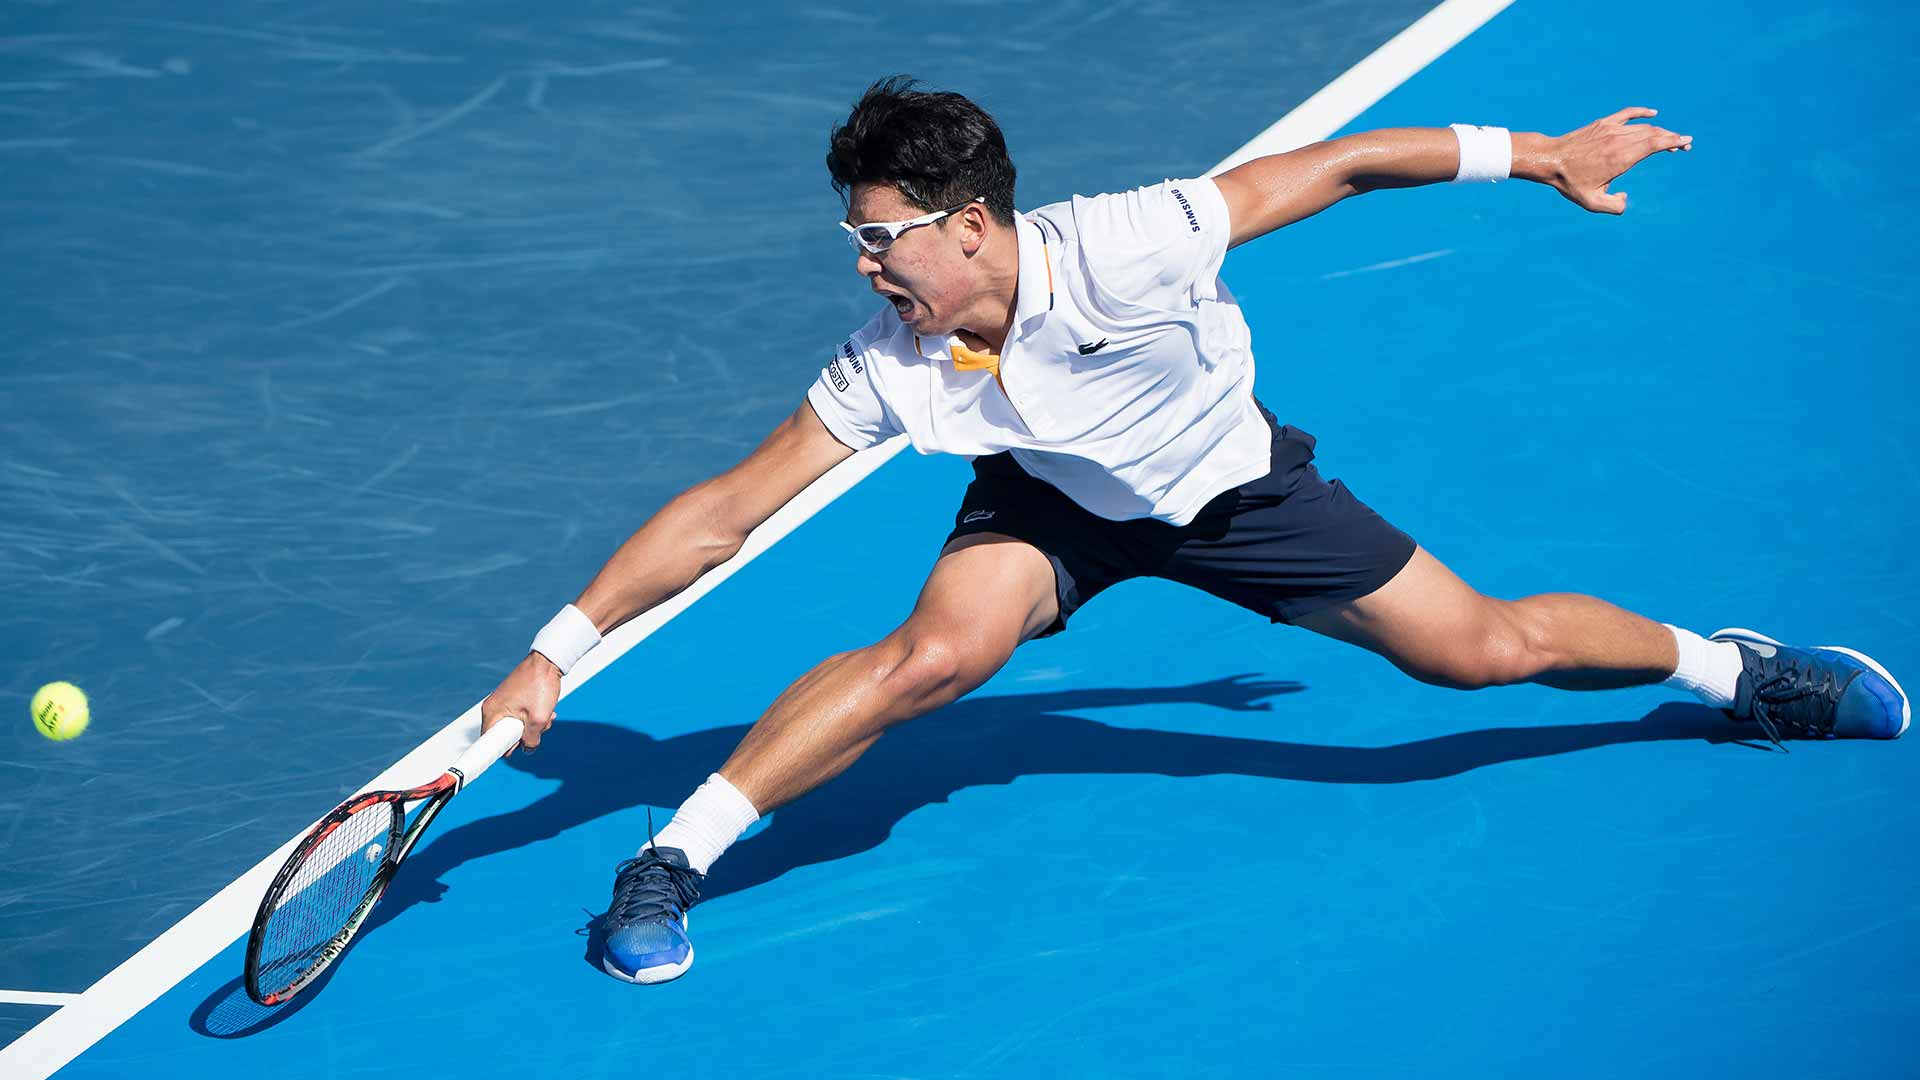 Hyeon chung overview atp world tour tennis nvjuhfo Images